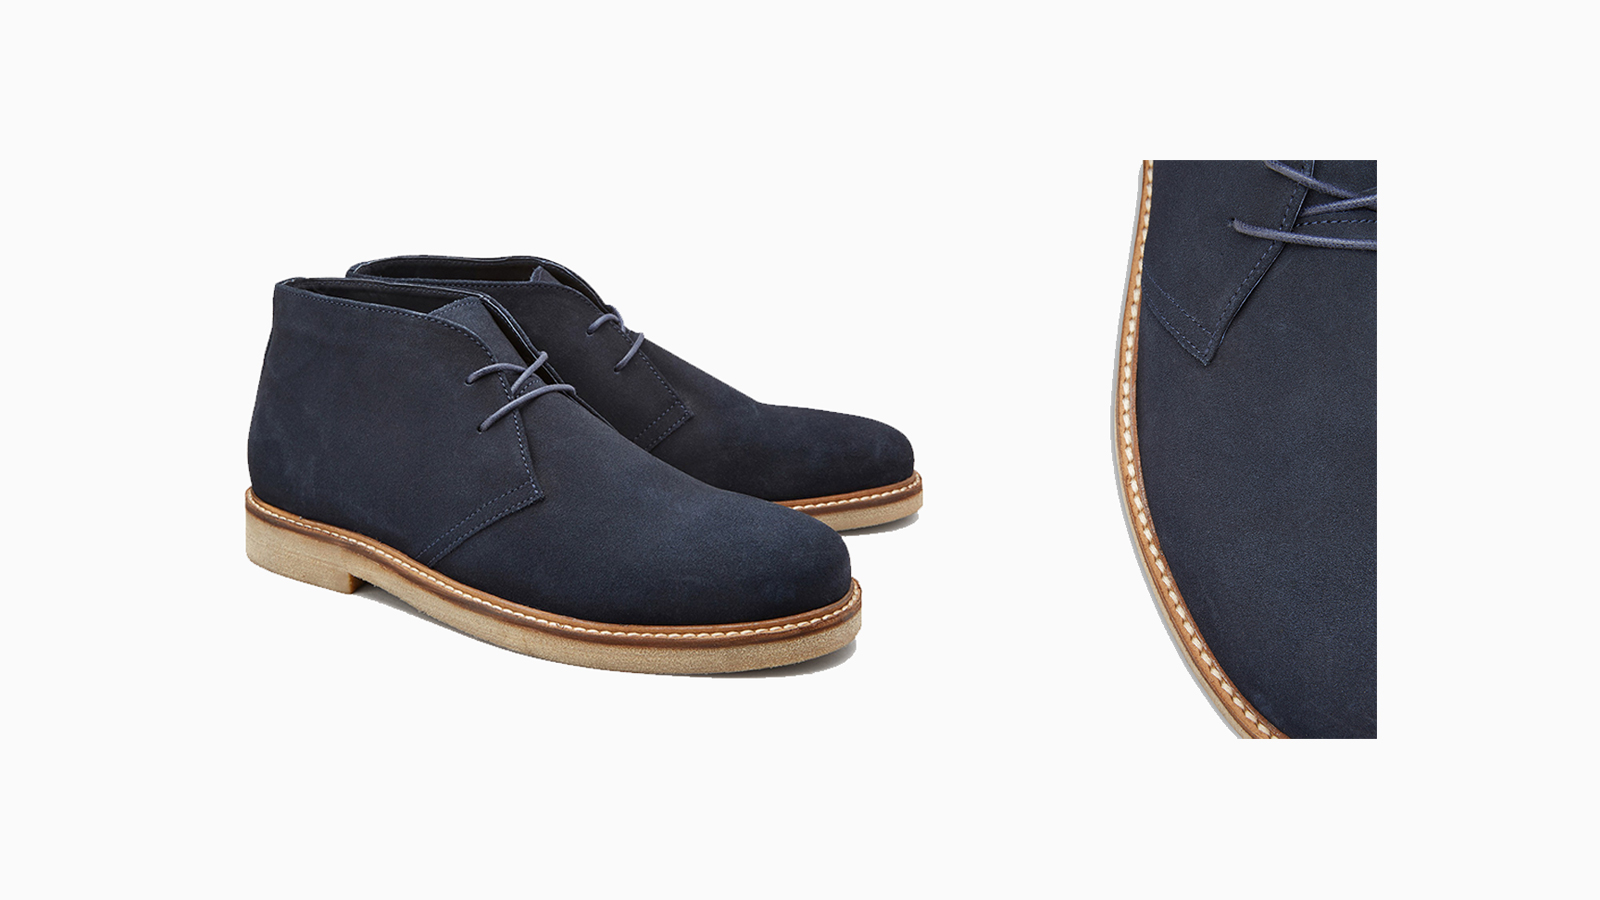 The winter boots you need now - suede desert boots